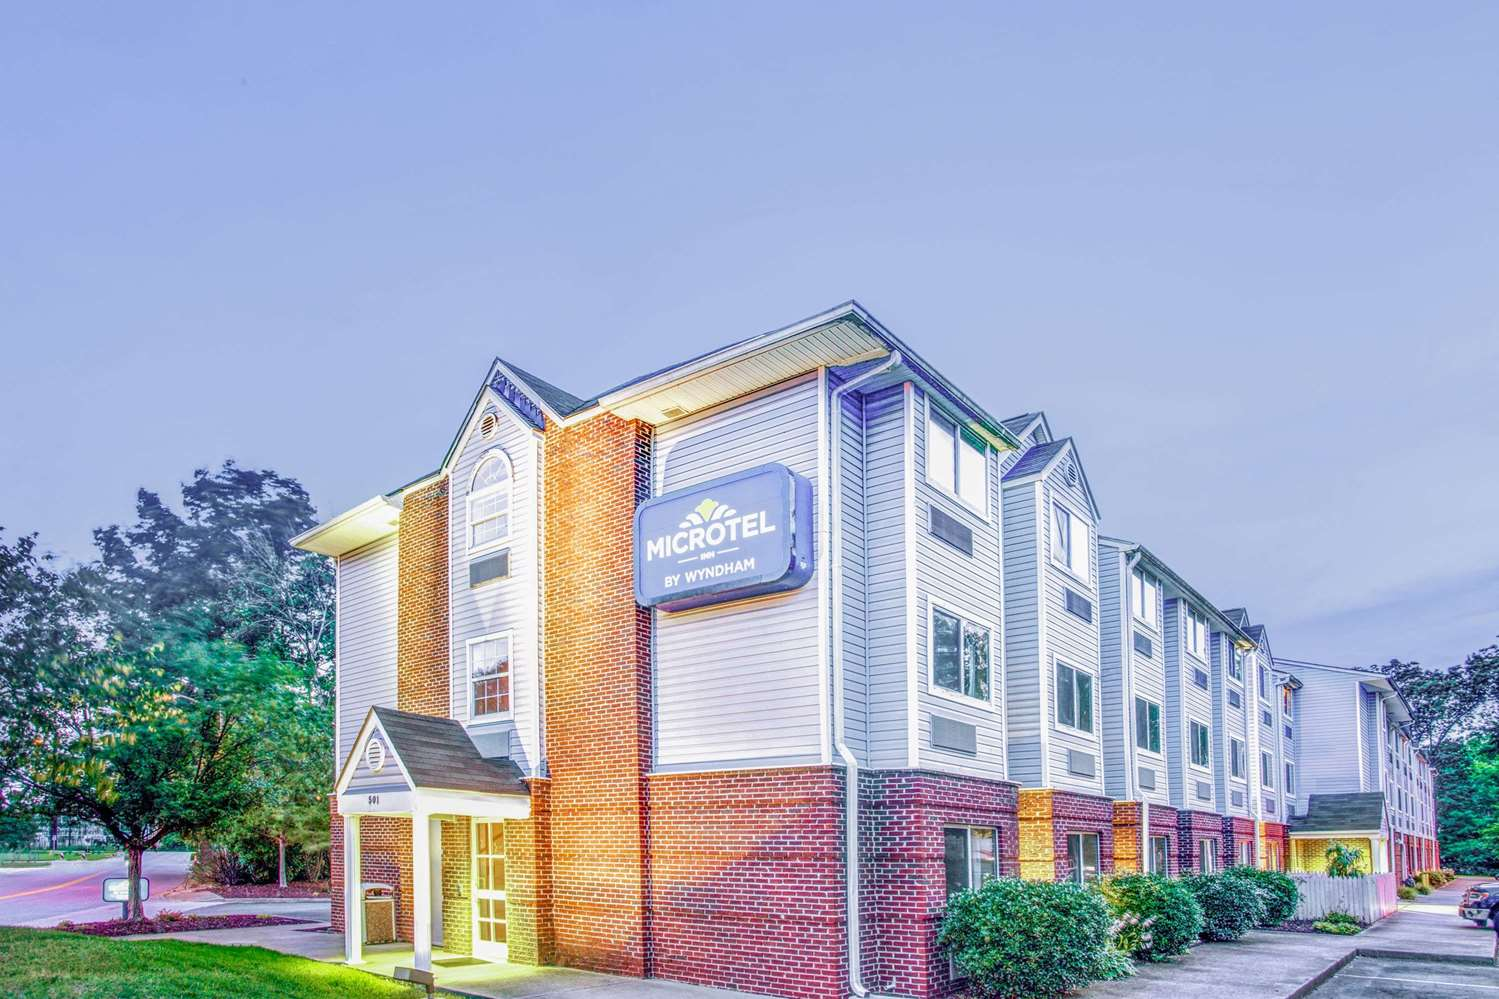 Microtel Inn by Wyndham Newport News